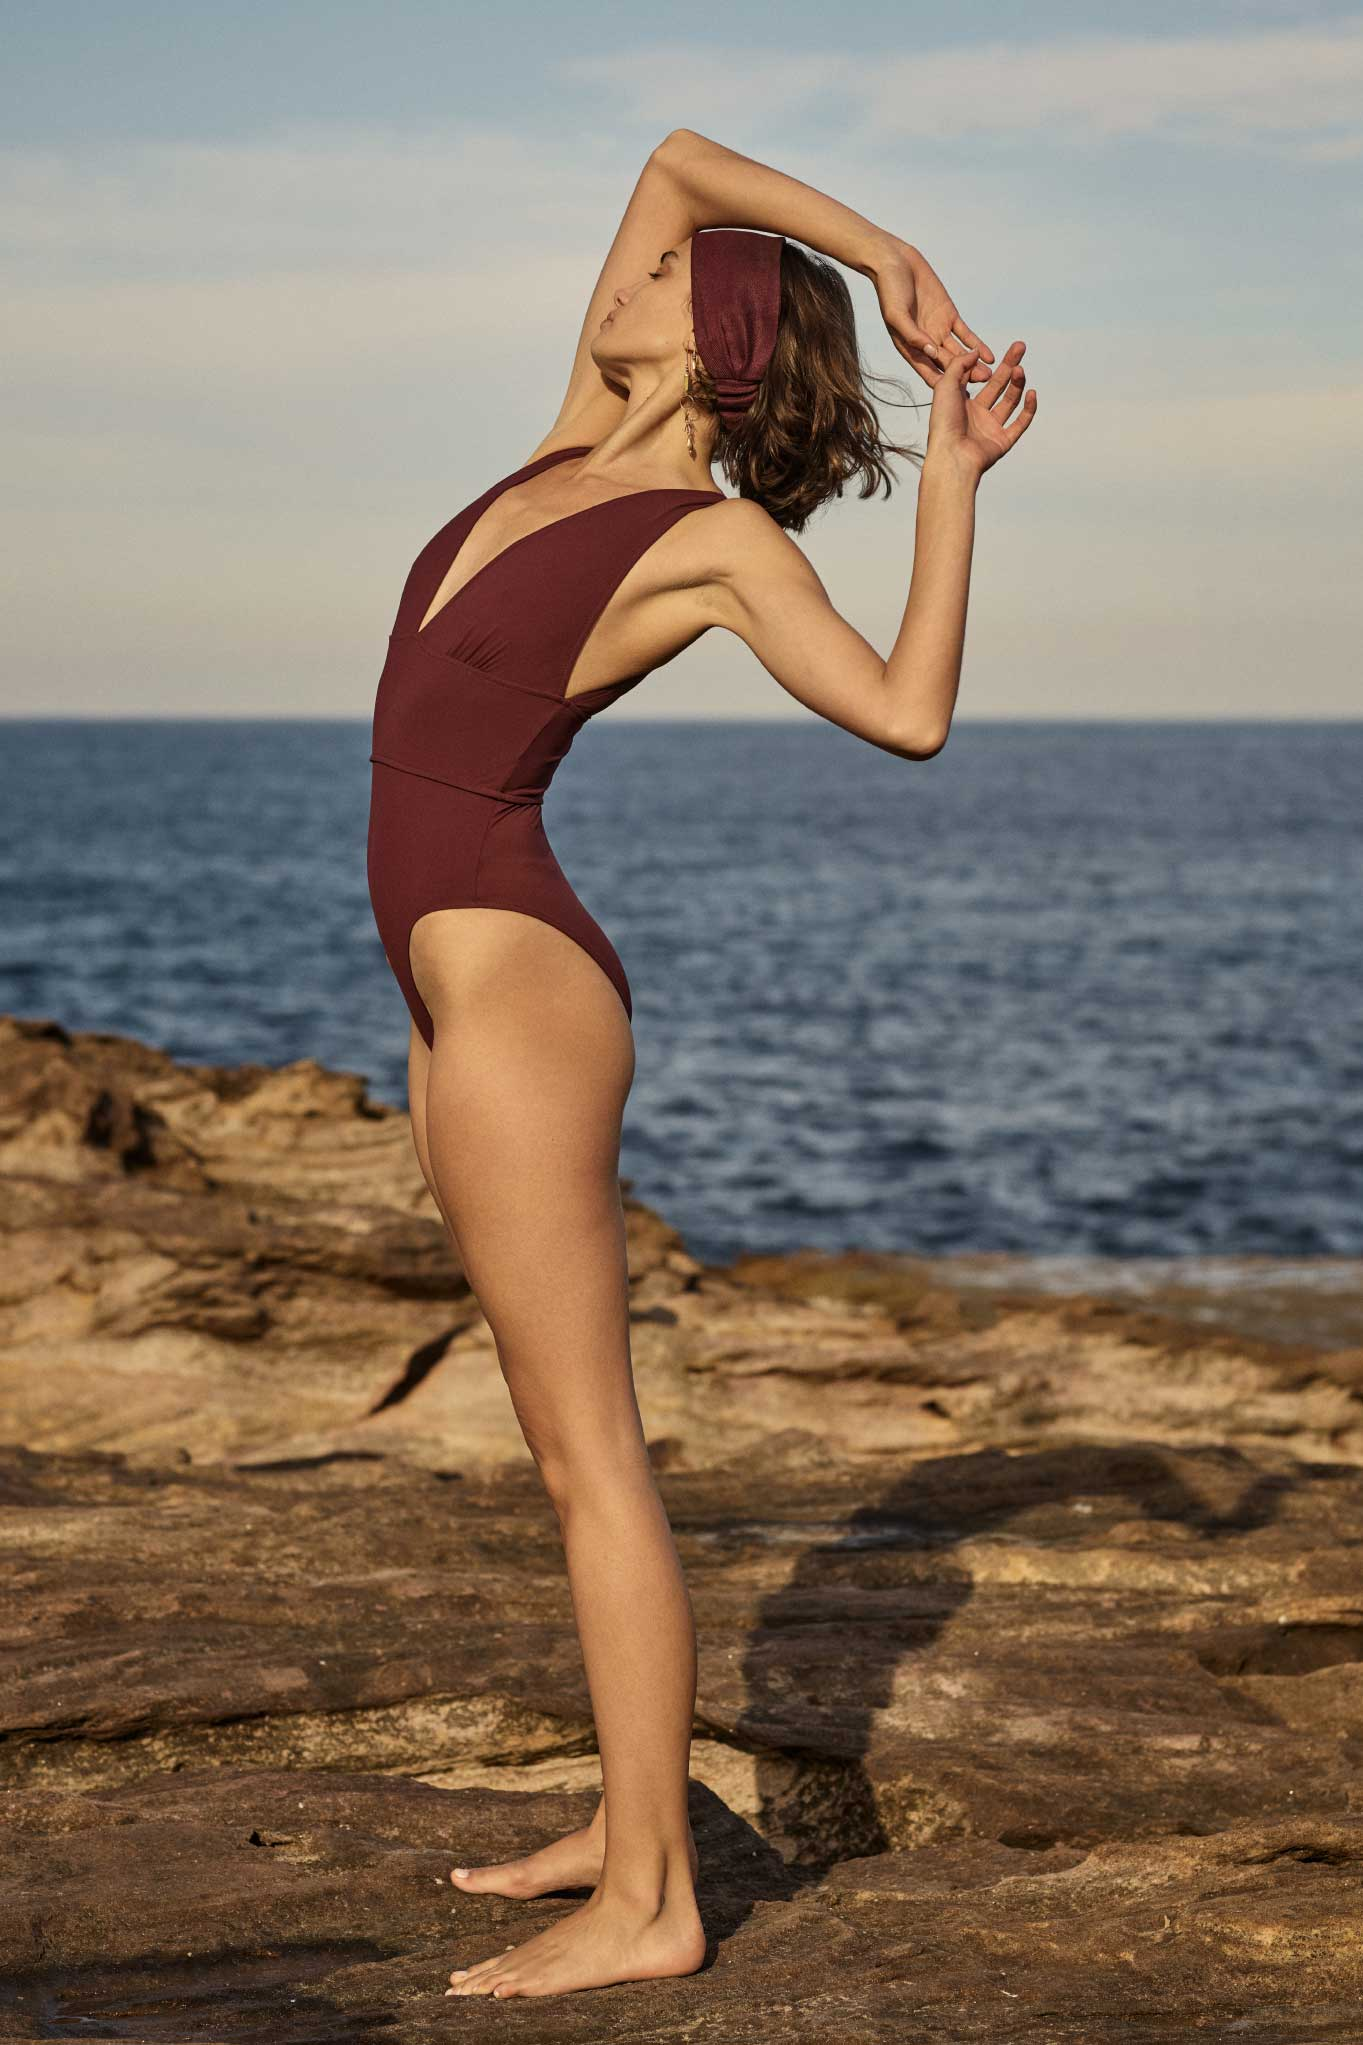 BONDI BORN Luxury Australian Swimwear sustainably made in Australia features Addison One Piece Swimsuit in Pink from Resort 20 Knots collectin.